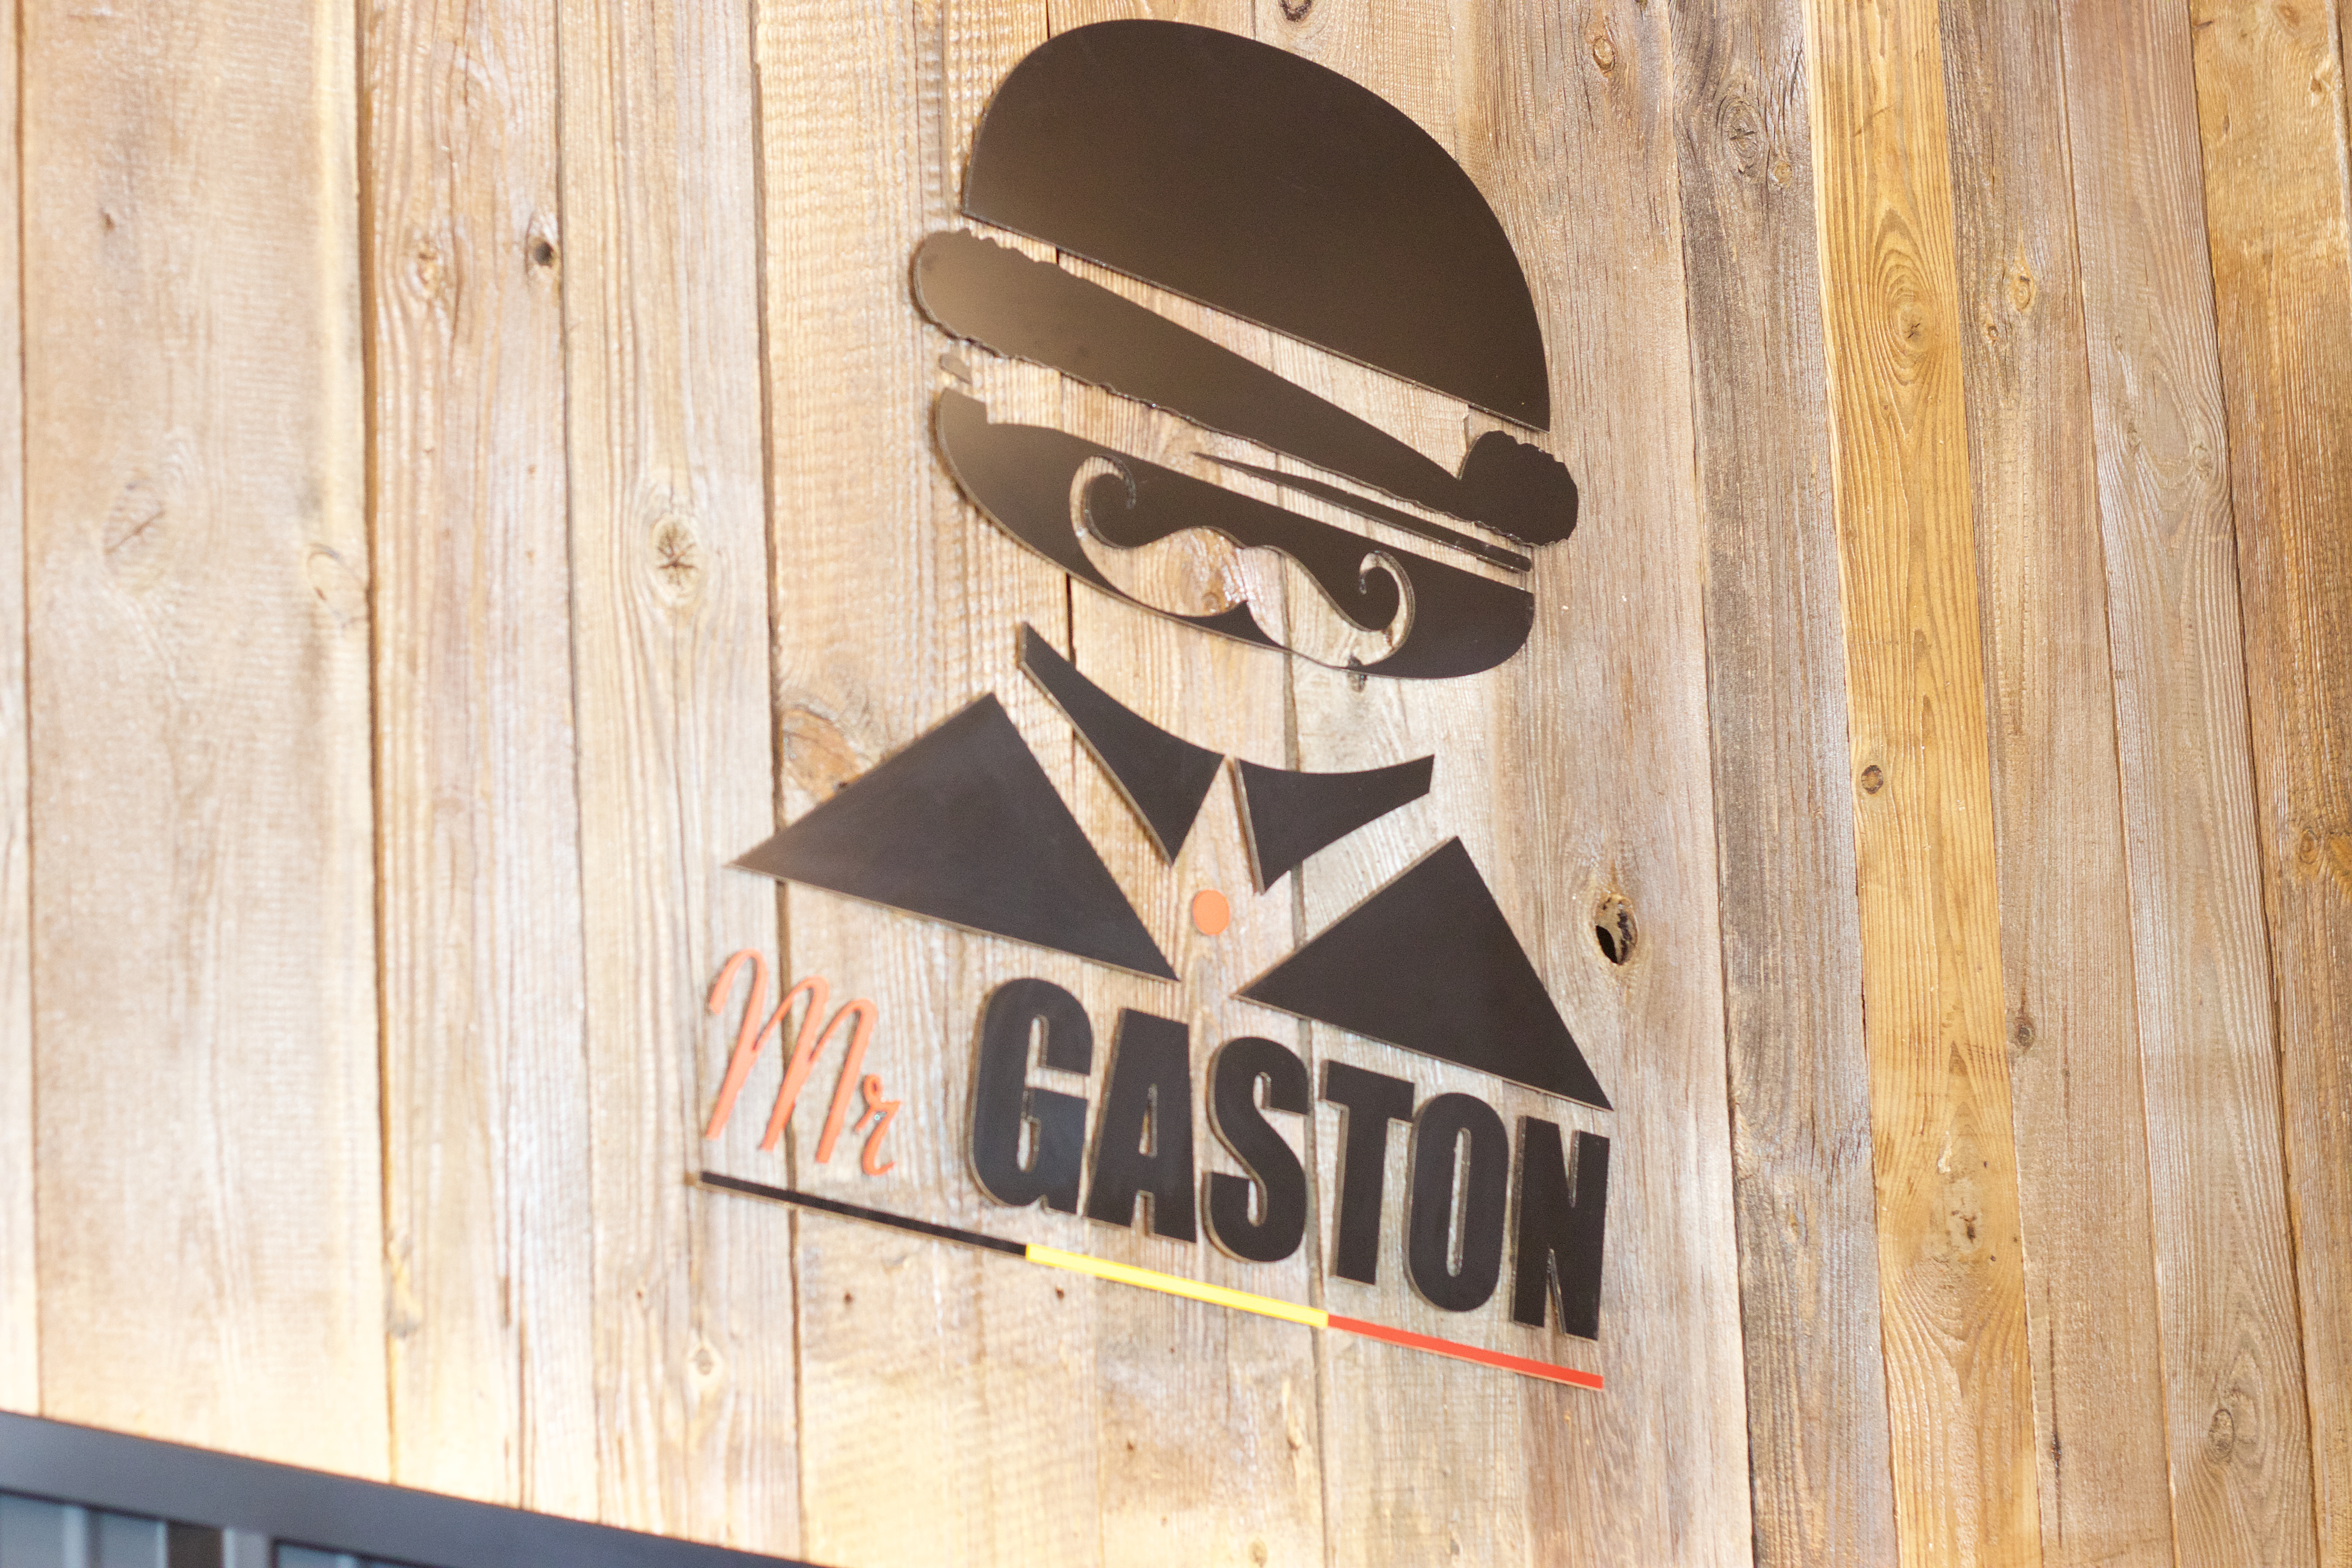 Mr gaston friterie